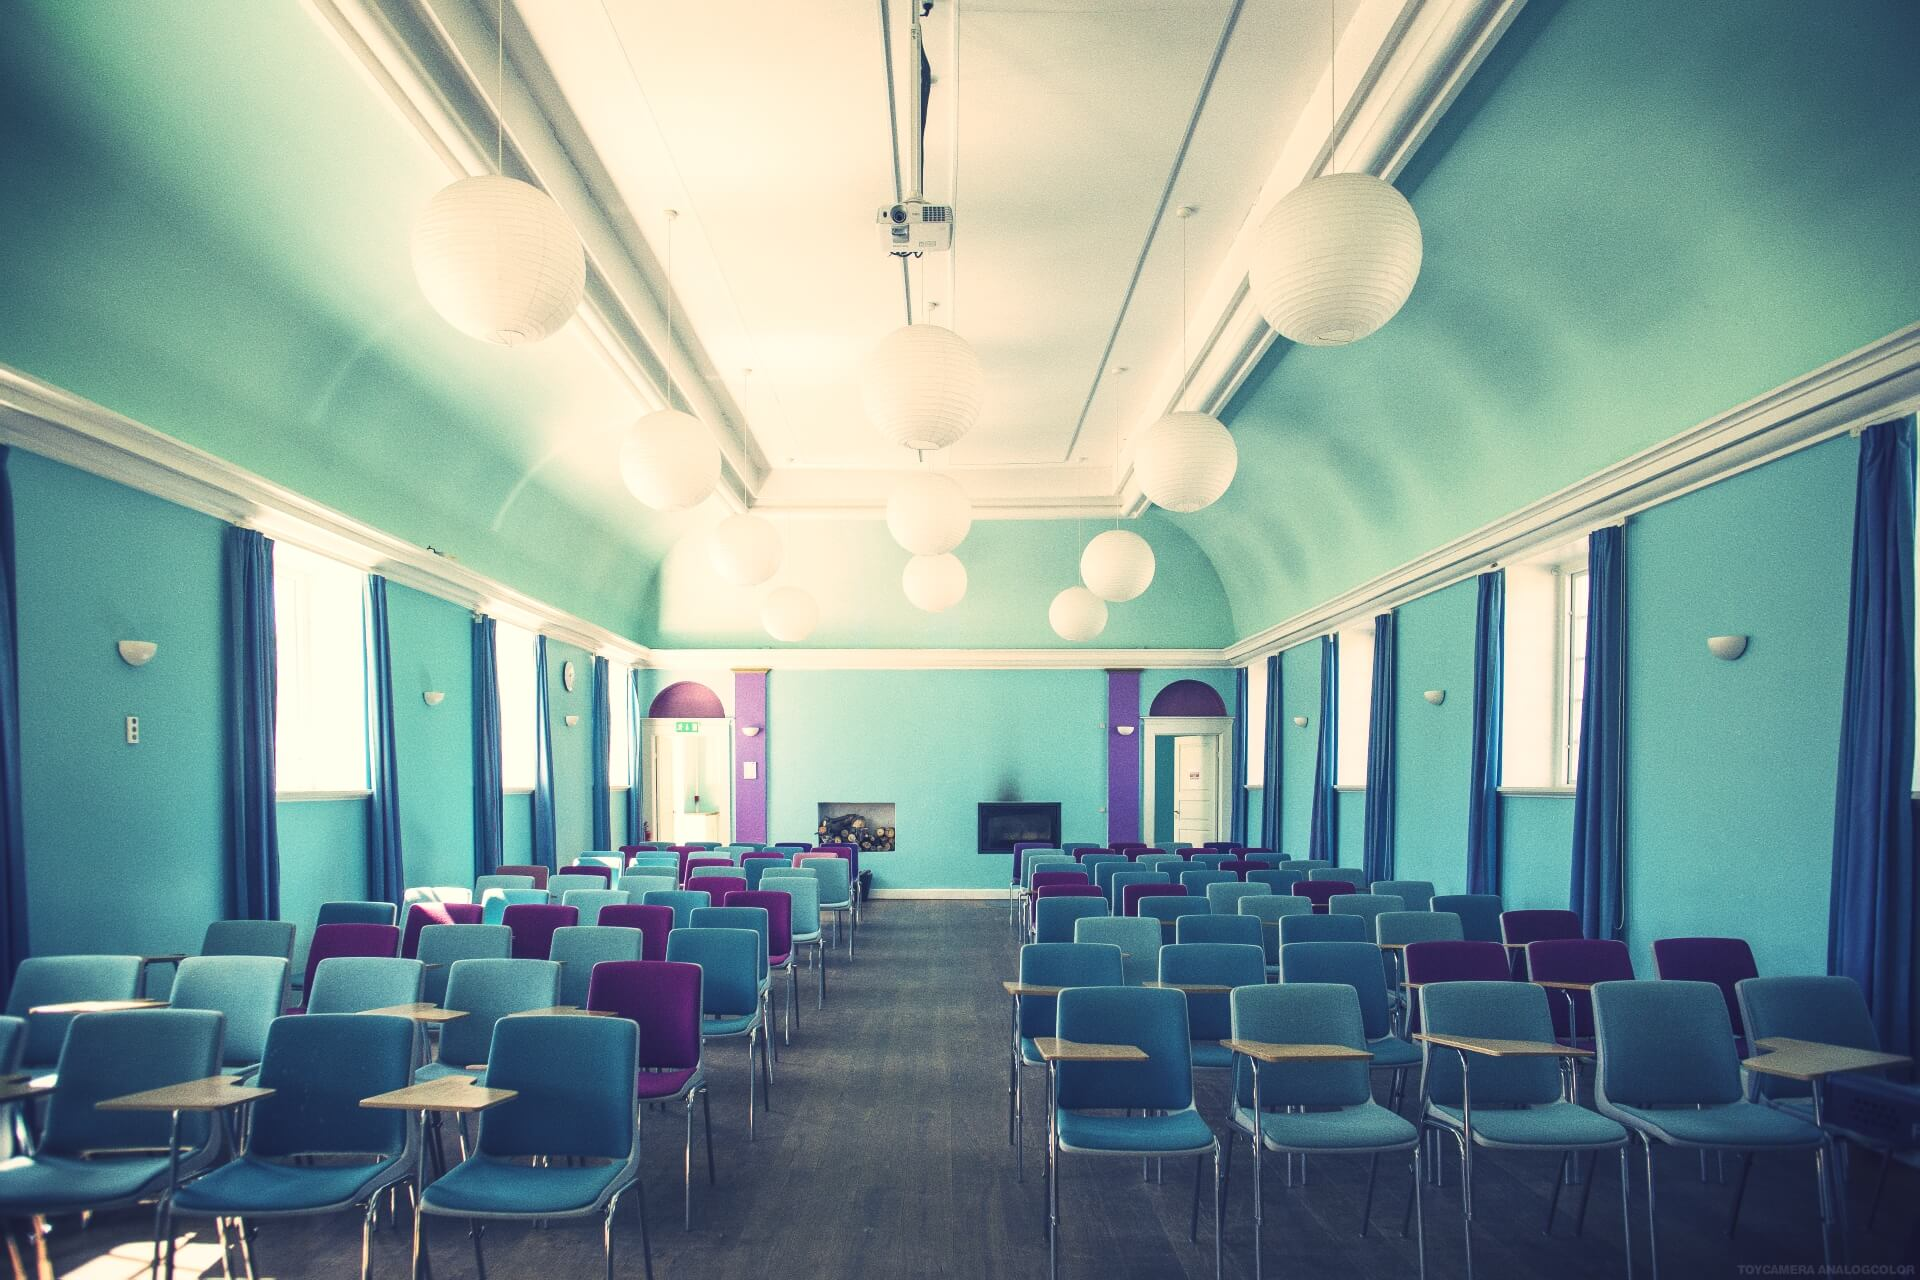 folk high school lecture hall at Internatioal People's College in Denmark 1